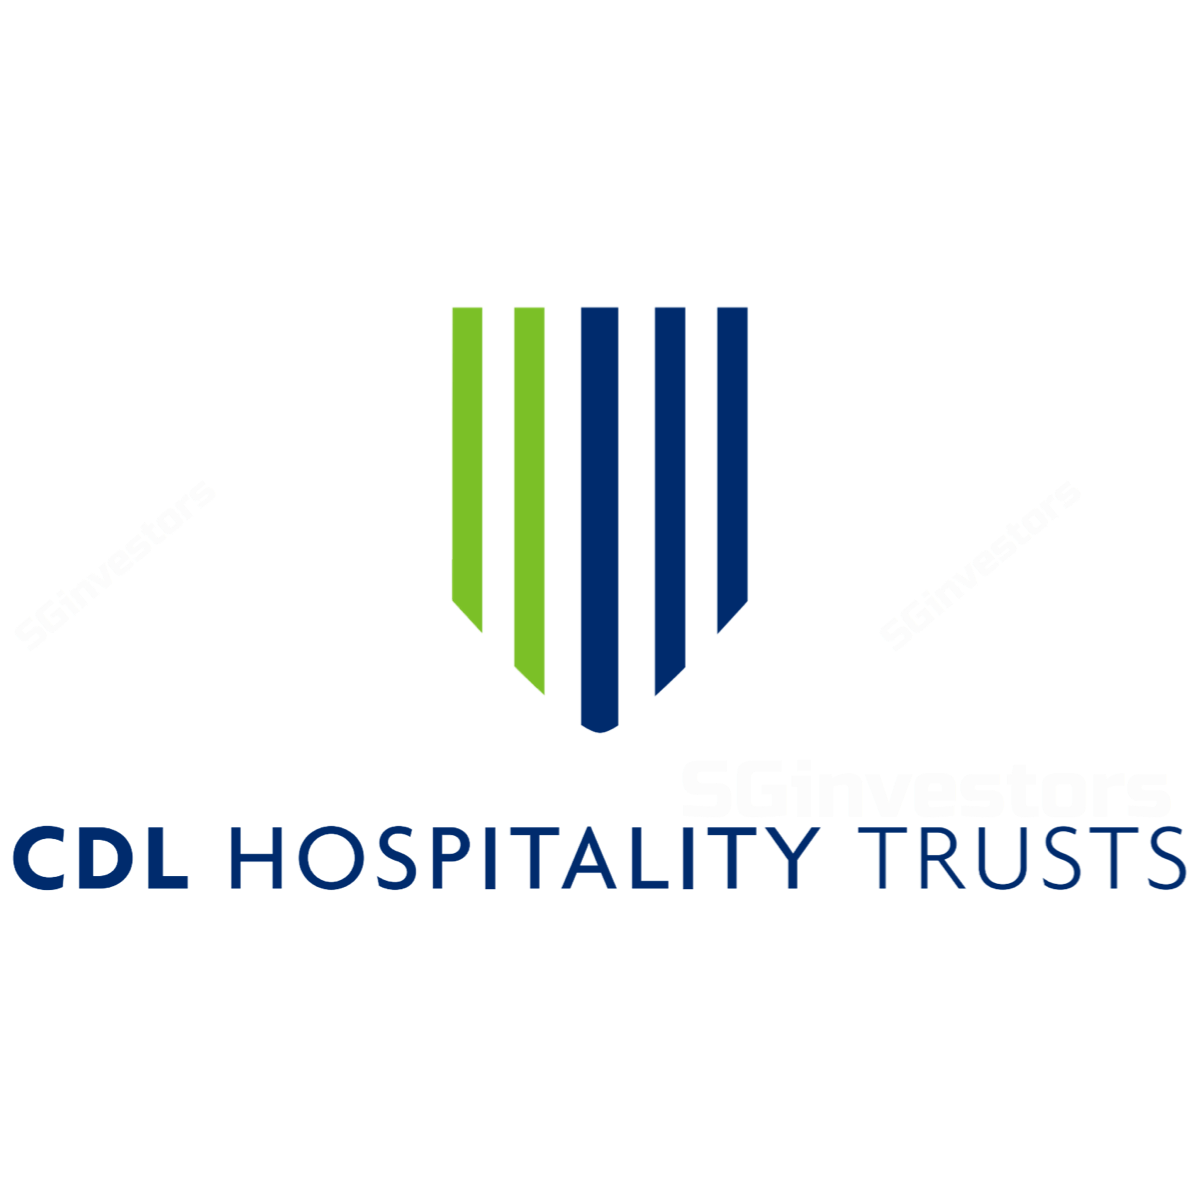 CDL Hospitality Trusts - DBS Vickers 2017-01-04: Unloved now but offers outstanding value